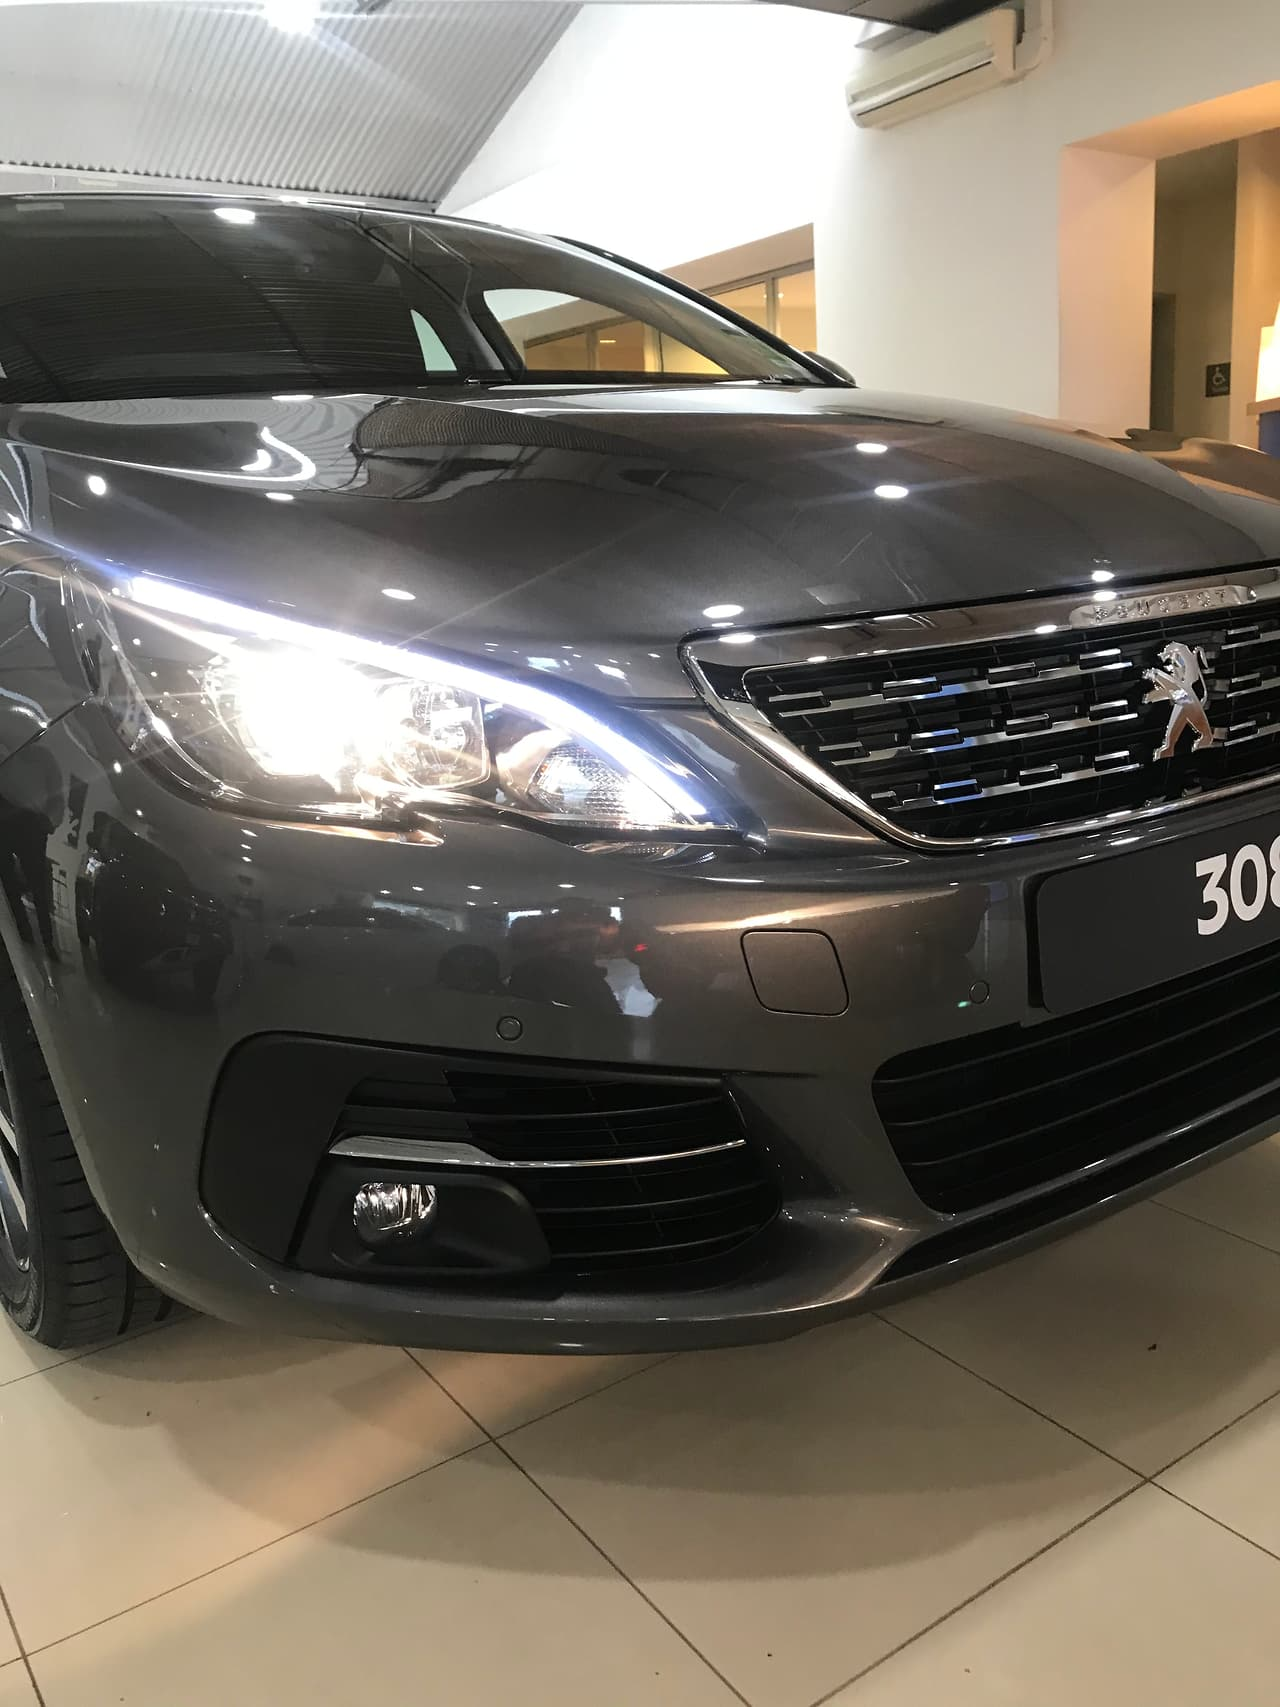 2020 PEUGEOT 308 Allure HATCHBACK